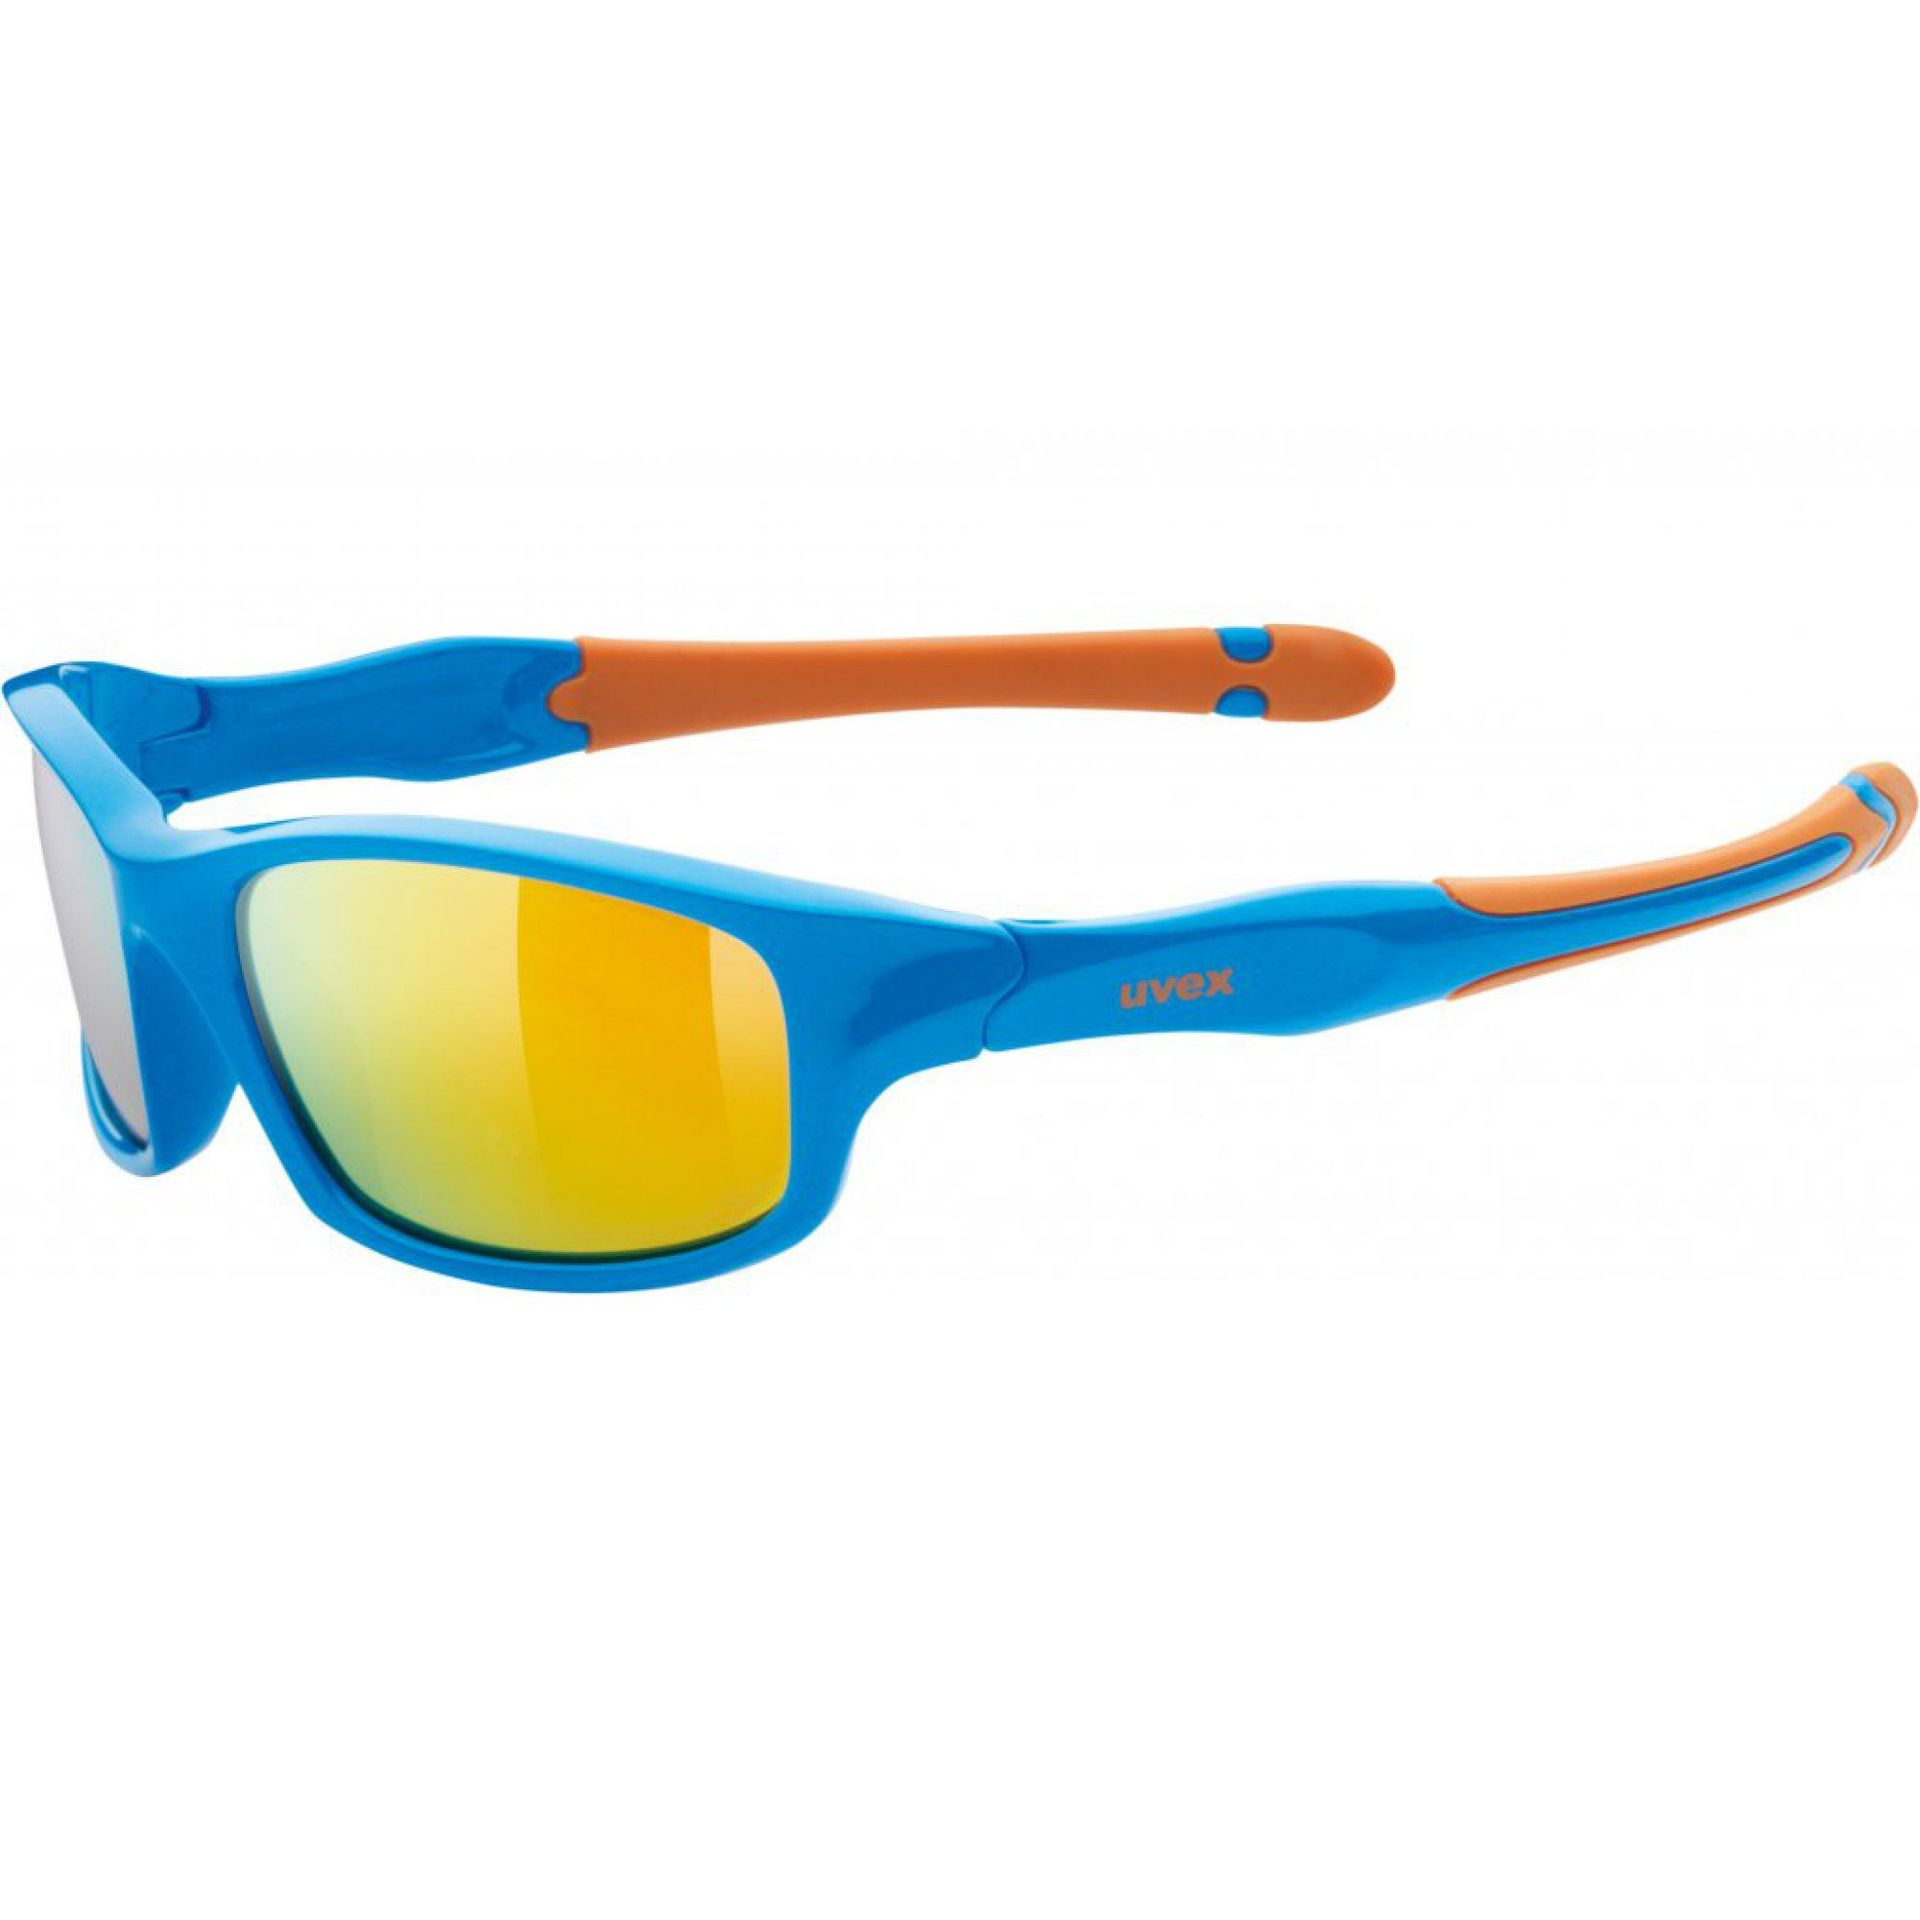 OKULARY UVEX SPORTSTYLE 507 BLUE ORANGE